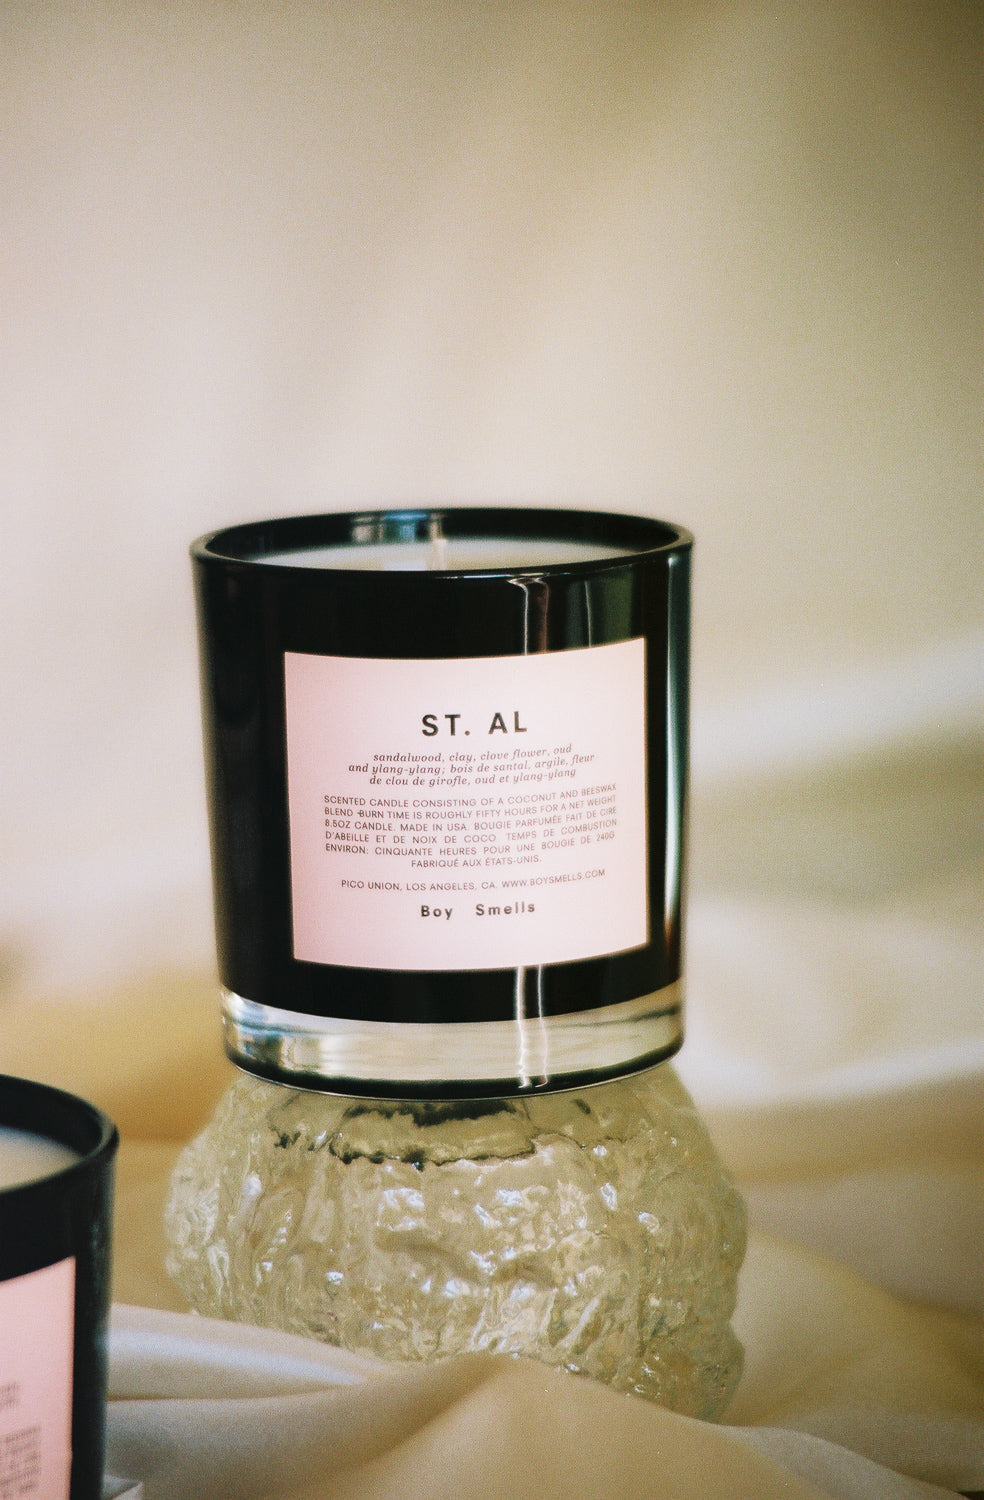 Candle 8.5oz by Boy Smells